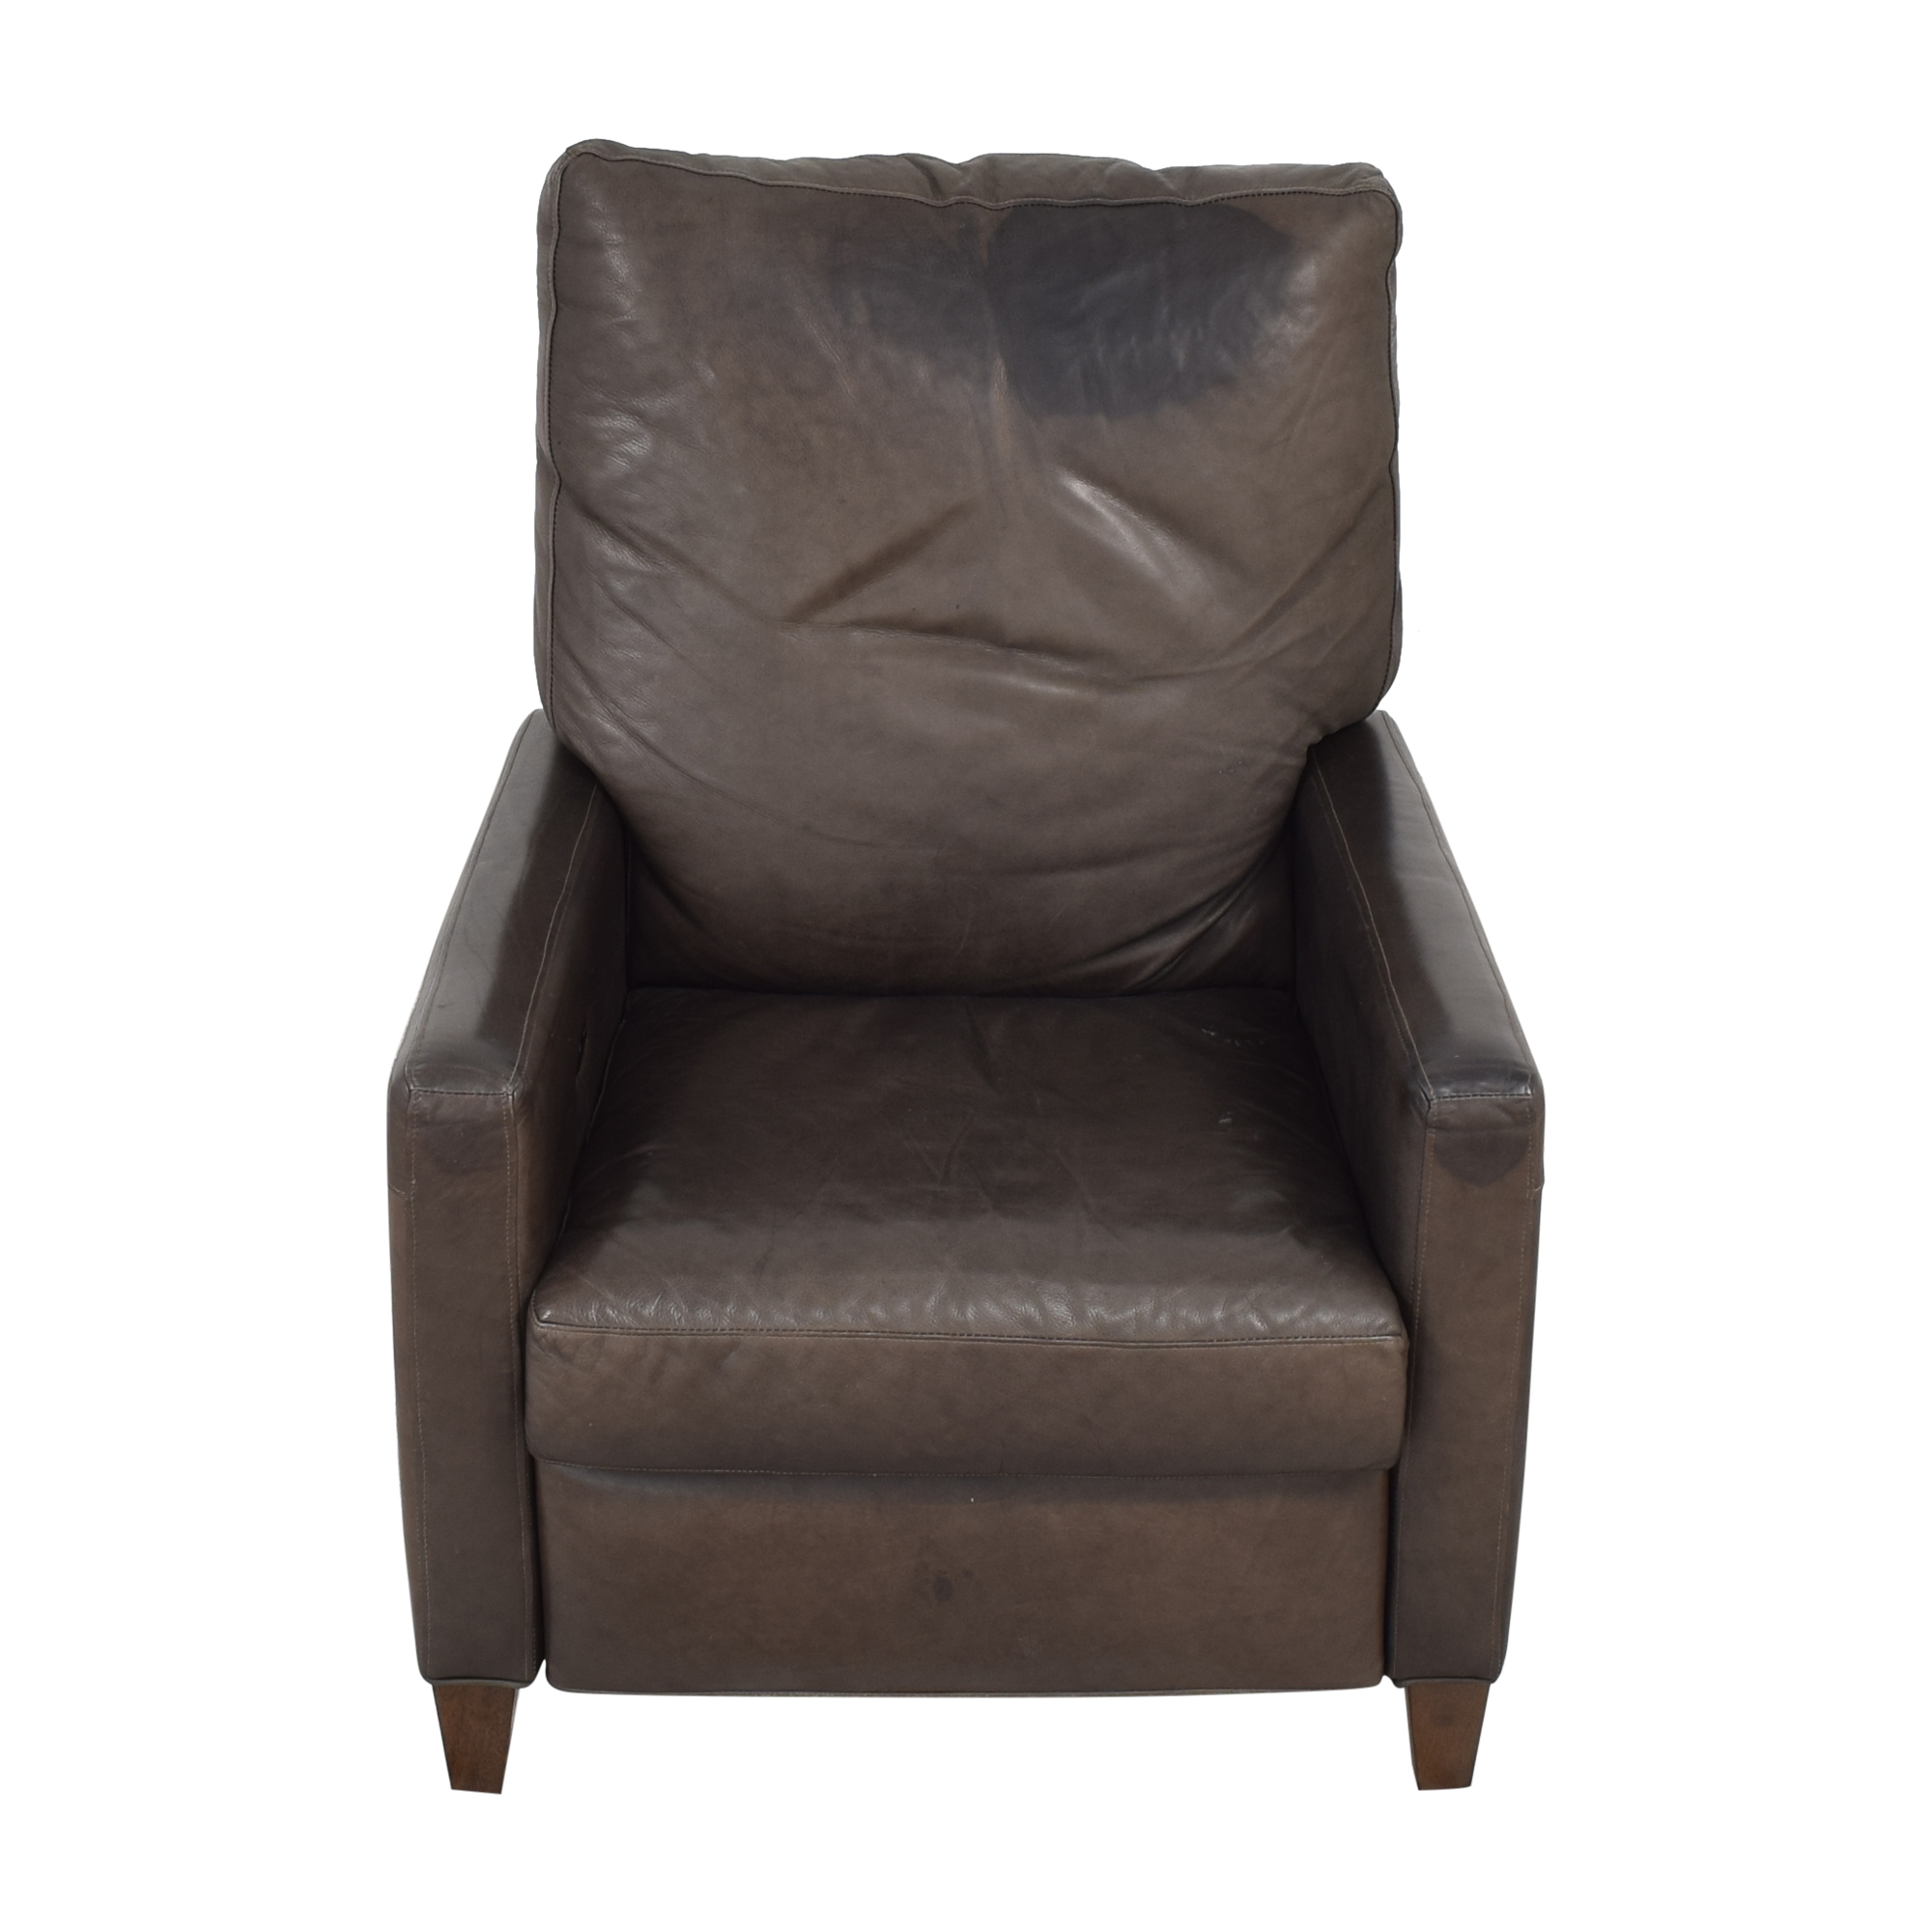 Michael Philip Custom Recliner / Recliners